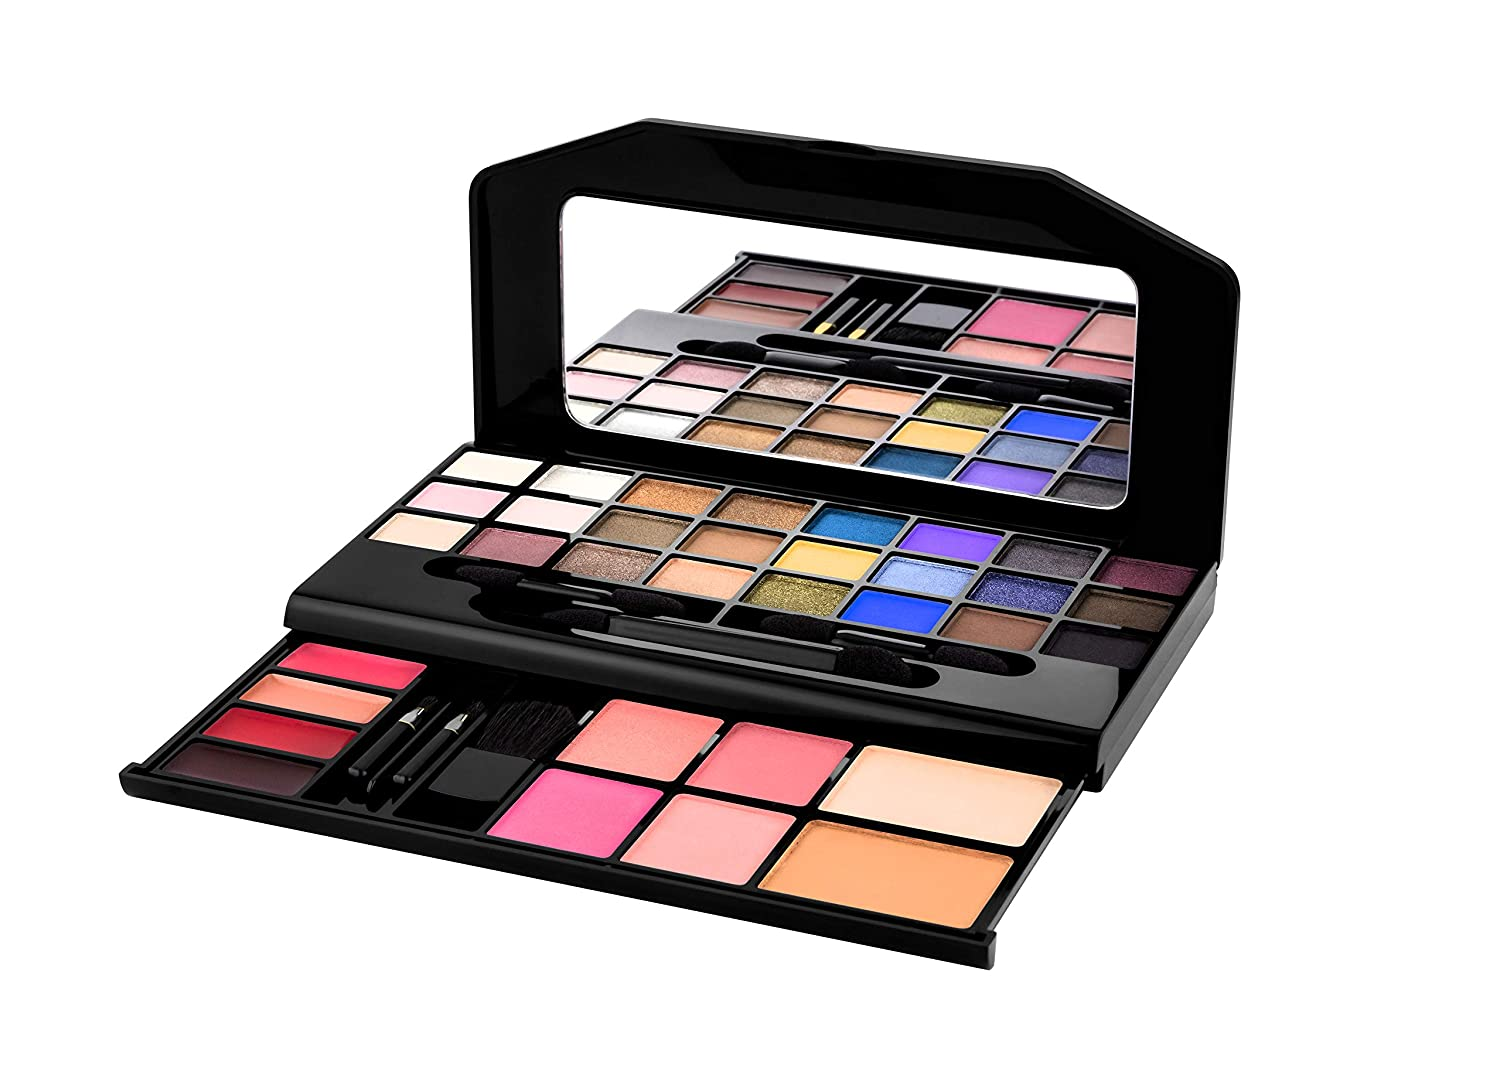 Revlon Love Is On Deluxe Make-up Kit Gift Set